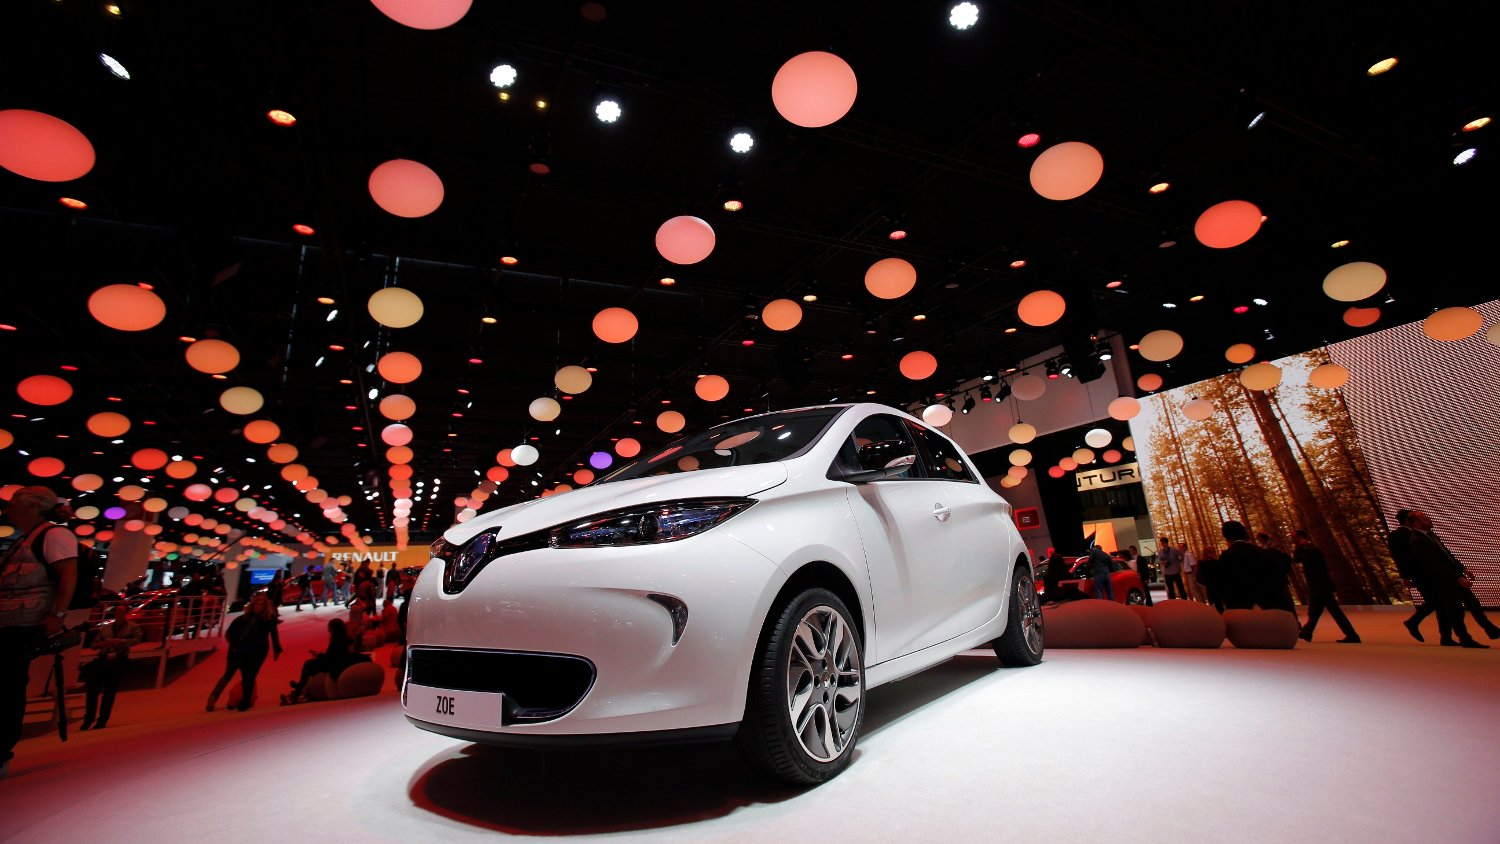 The new Renault Zoe is on display during the press day at the Paris Auto Show, France, Thursday, Sept. 27, 2012. The Paris Auto Show will open its gates to the public from Sept. 29 to Oct. 14.